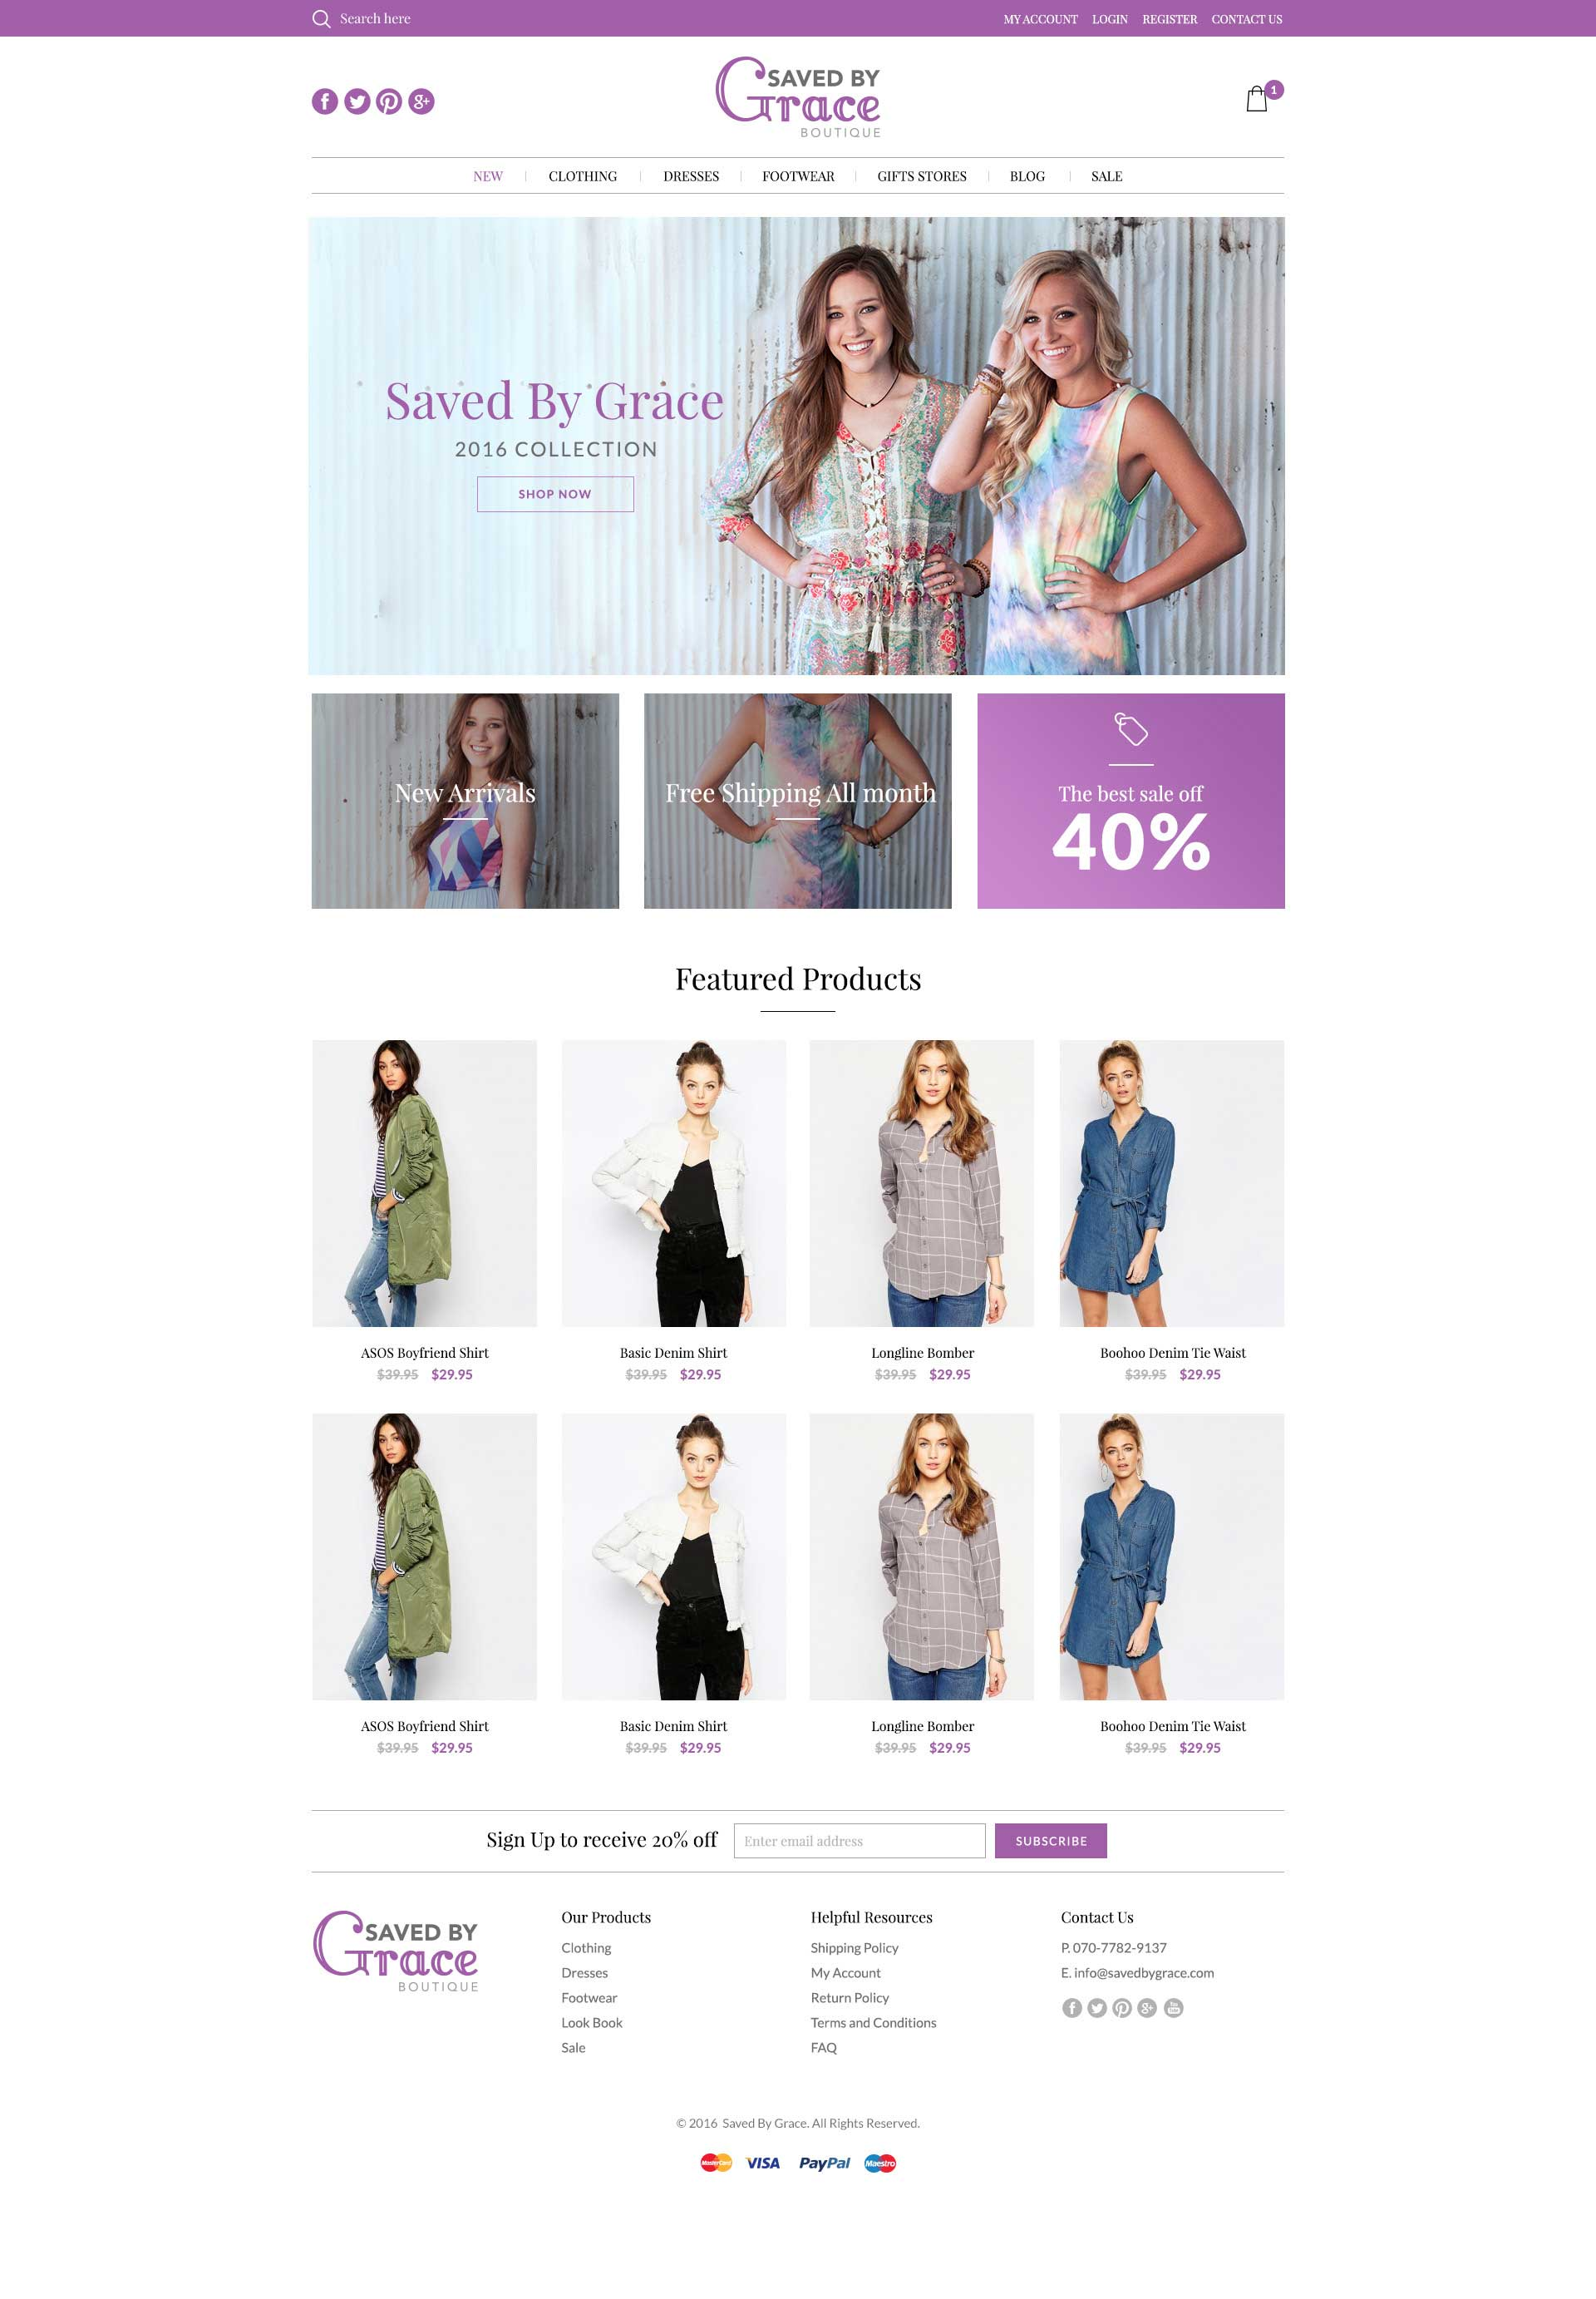 WordPress Custom Website Design, WordPress Design, Woocommerce, WordPress Support, WordPress Help, WordPress Maintenance